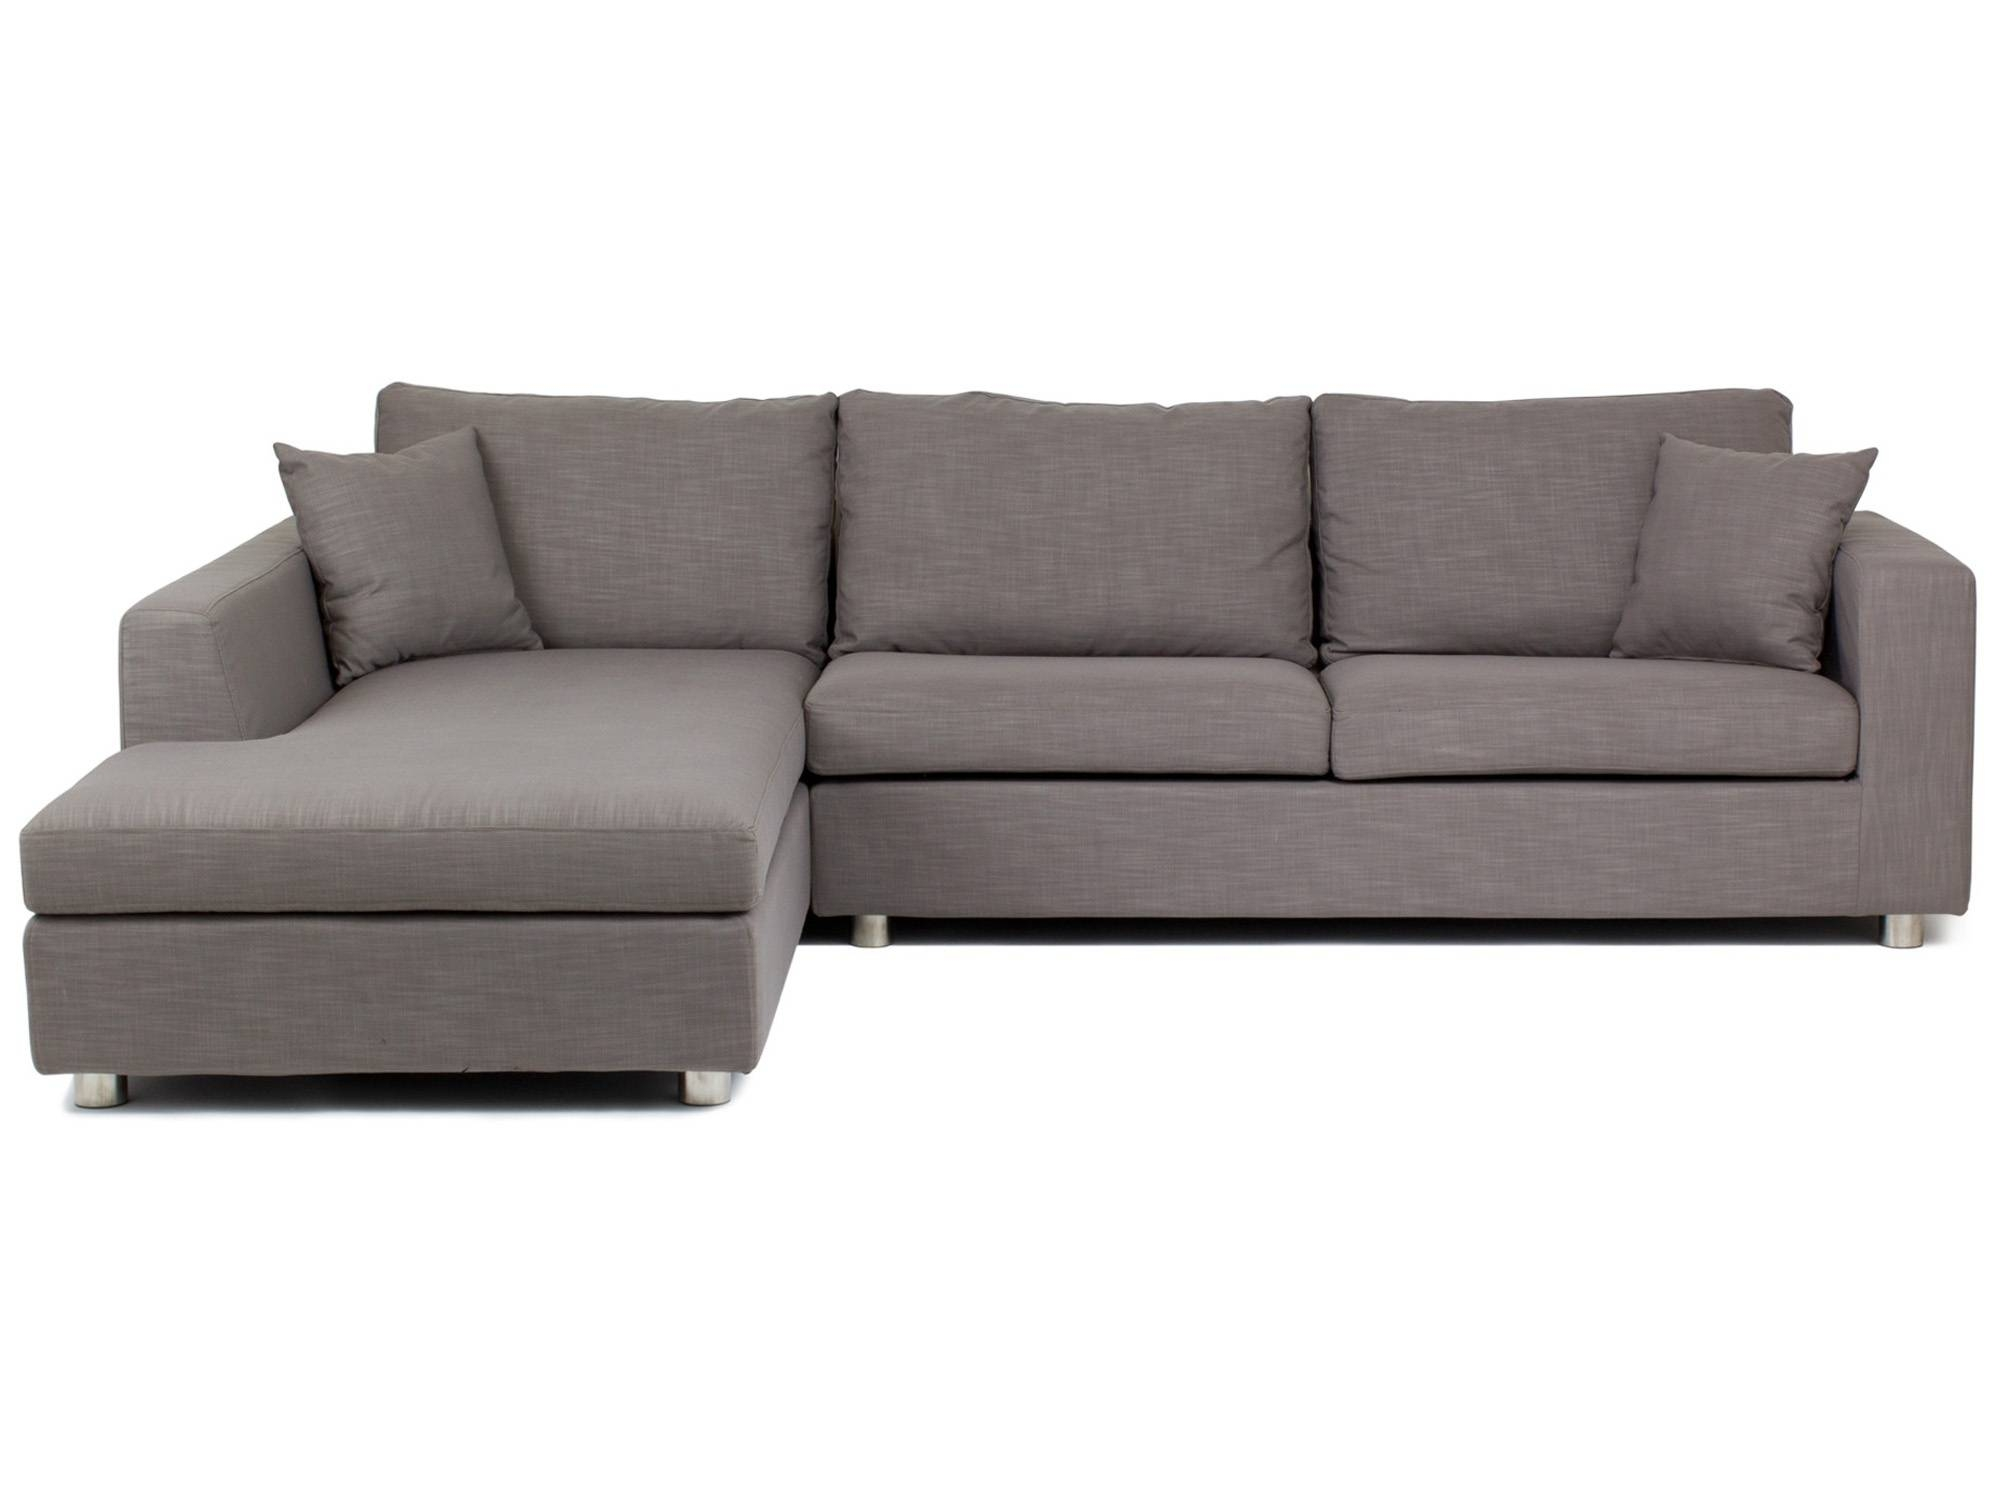 Corner Chaise Lounge Sofa Bed – Revistapacheco For Sofa Beds With Chaise Lounge (View 2 of 15)